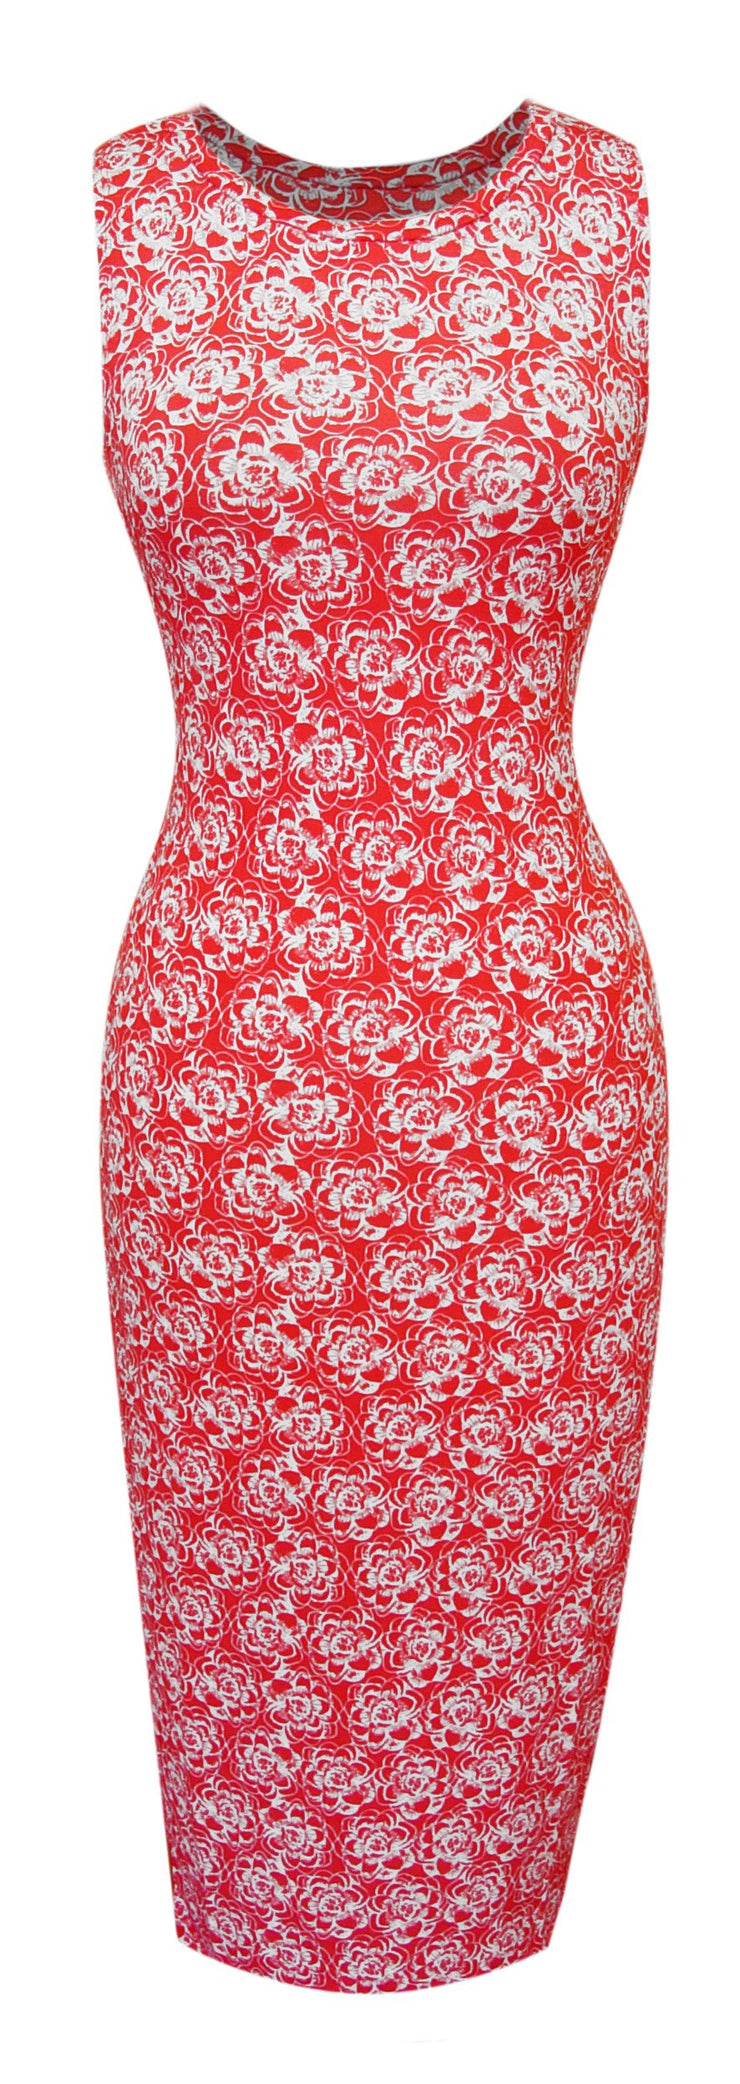 A1593-Floral-BodyconDress-Rose-Larg-JG